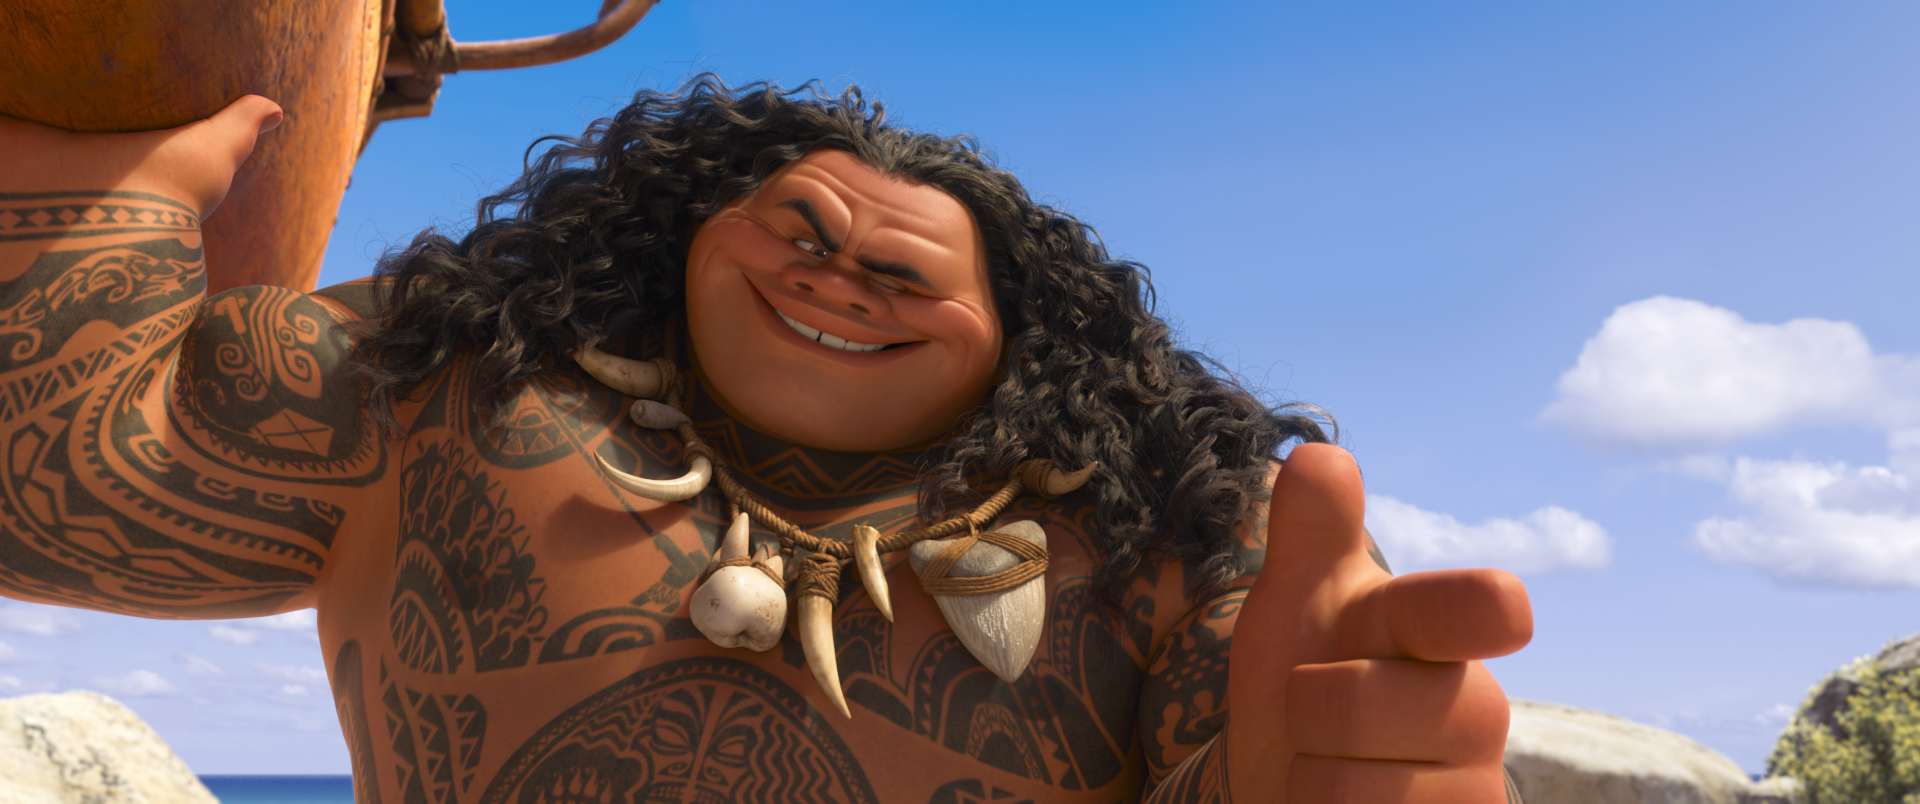 MOANA - (Pictured) Maui. ©2016 Disney. All Rights Reserved.